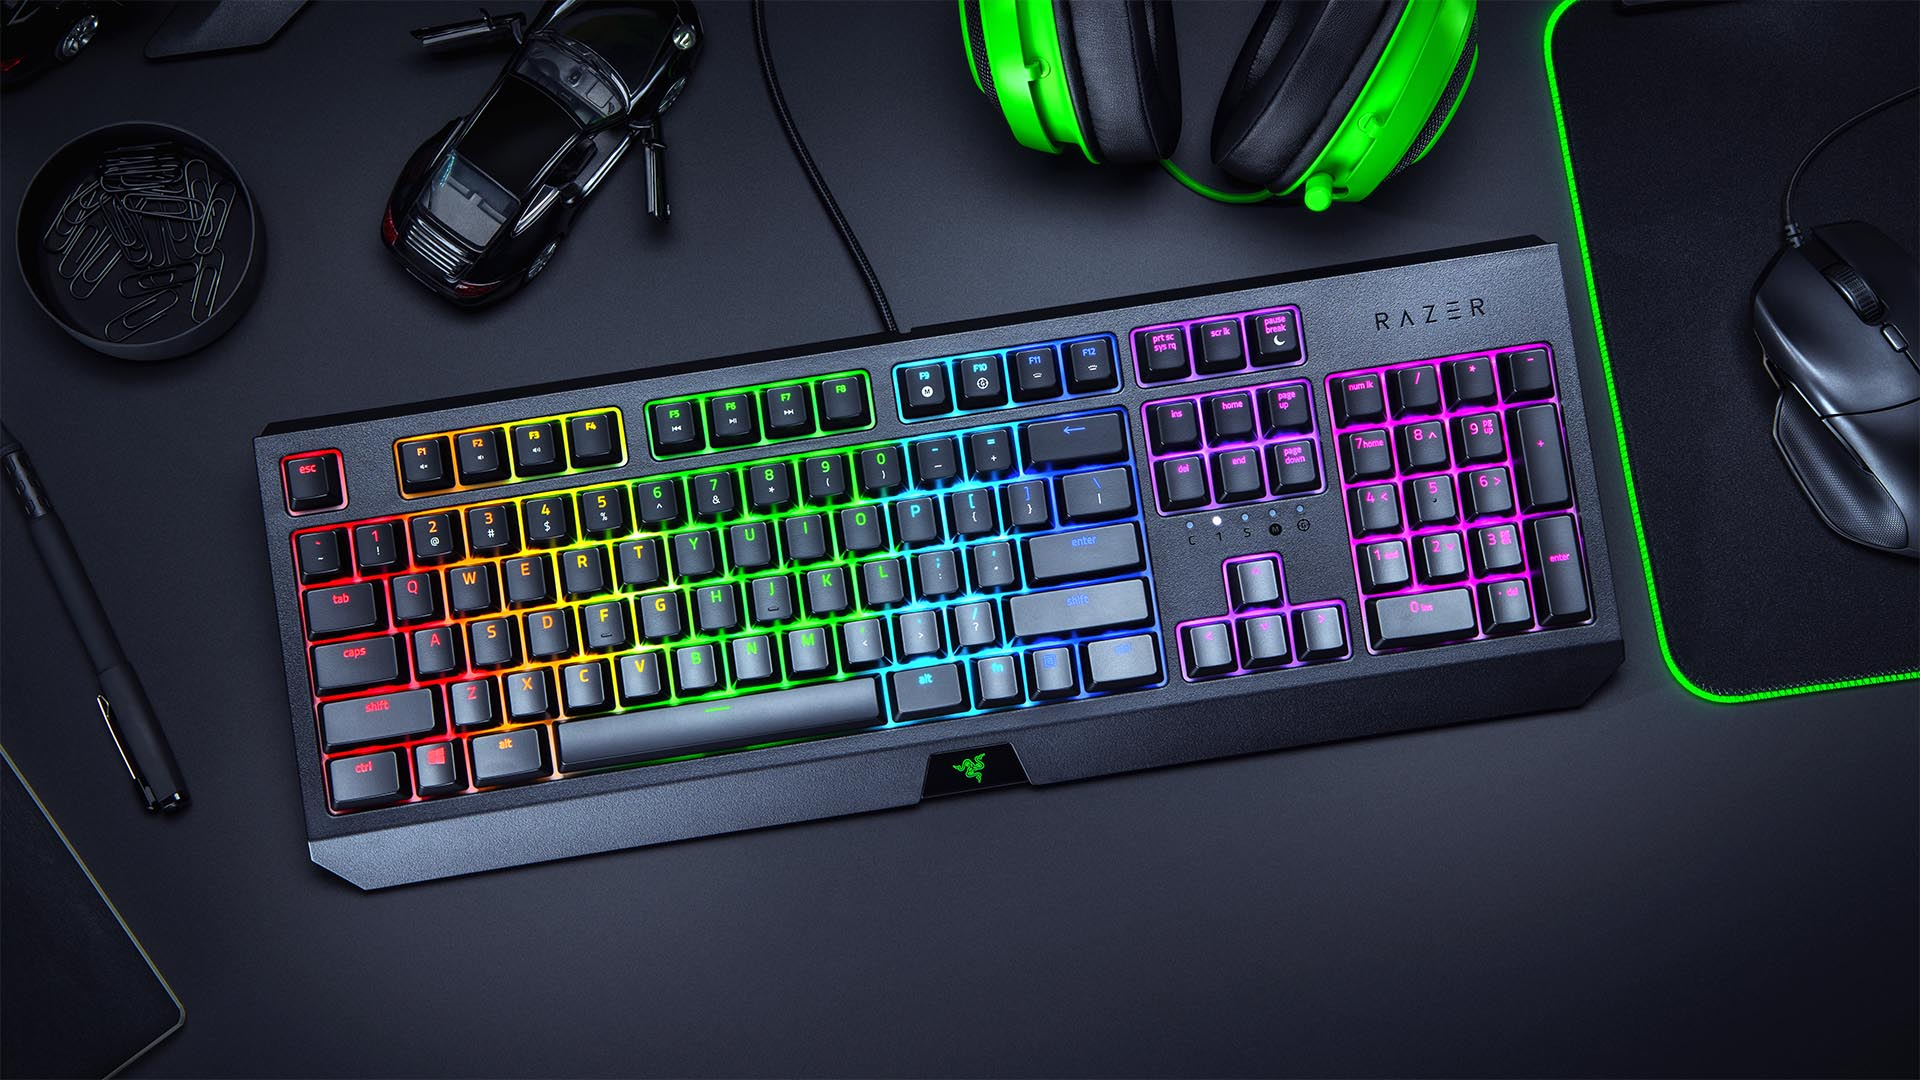 Razer BlackWidow review: more than just the gaming keyboard